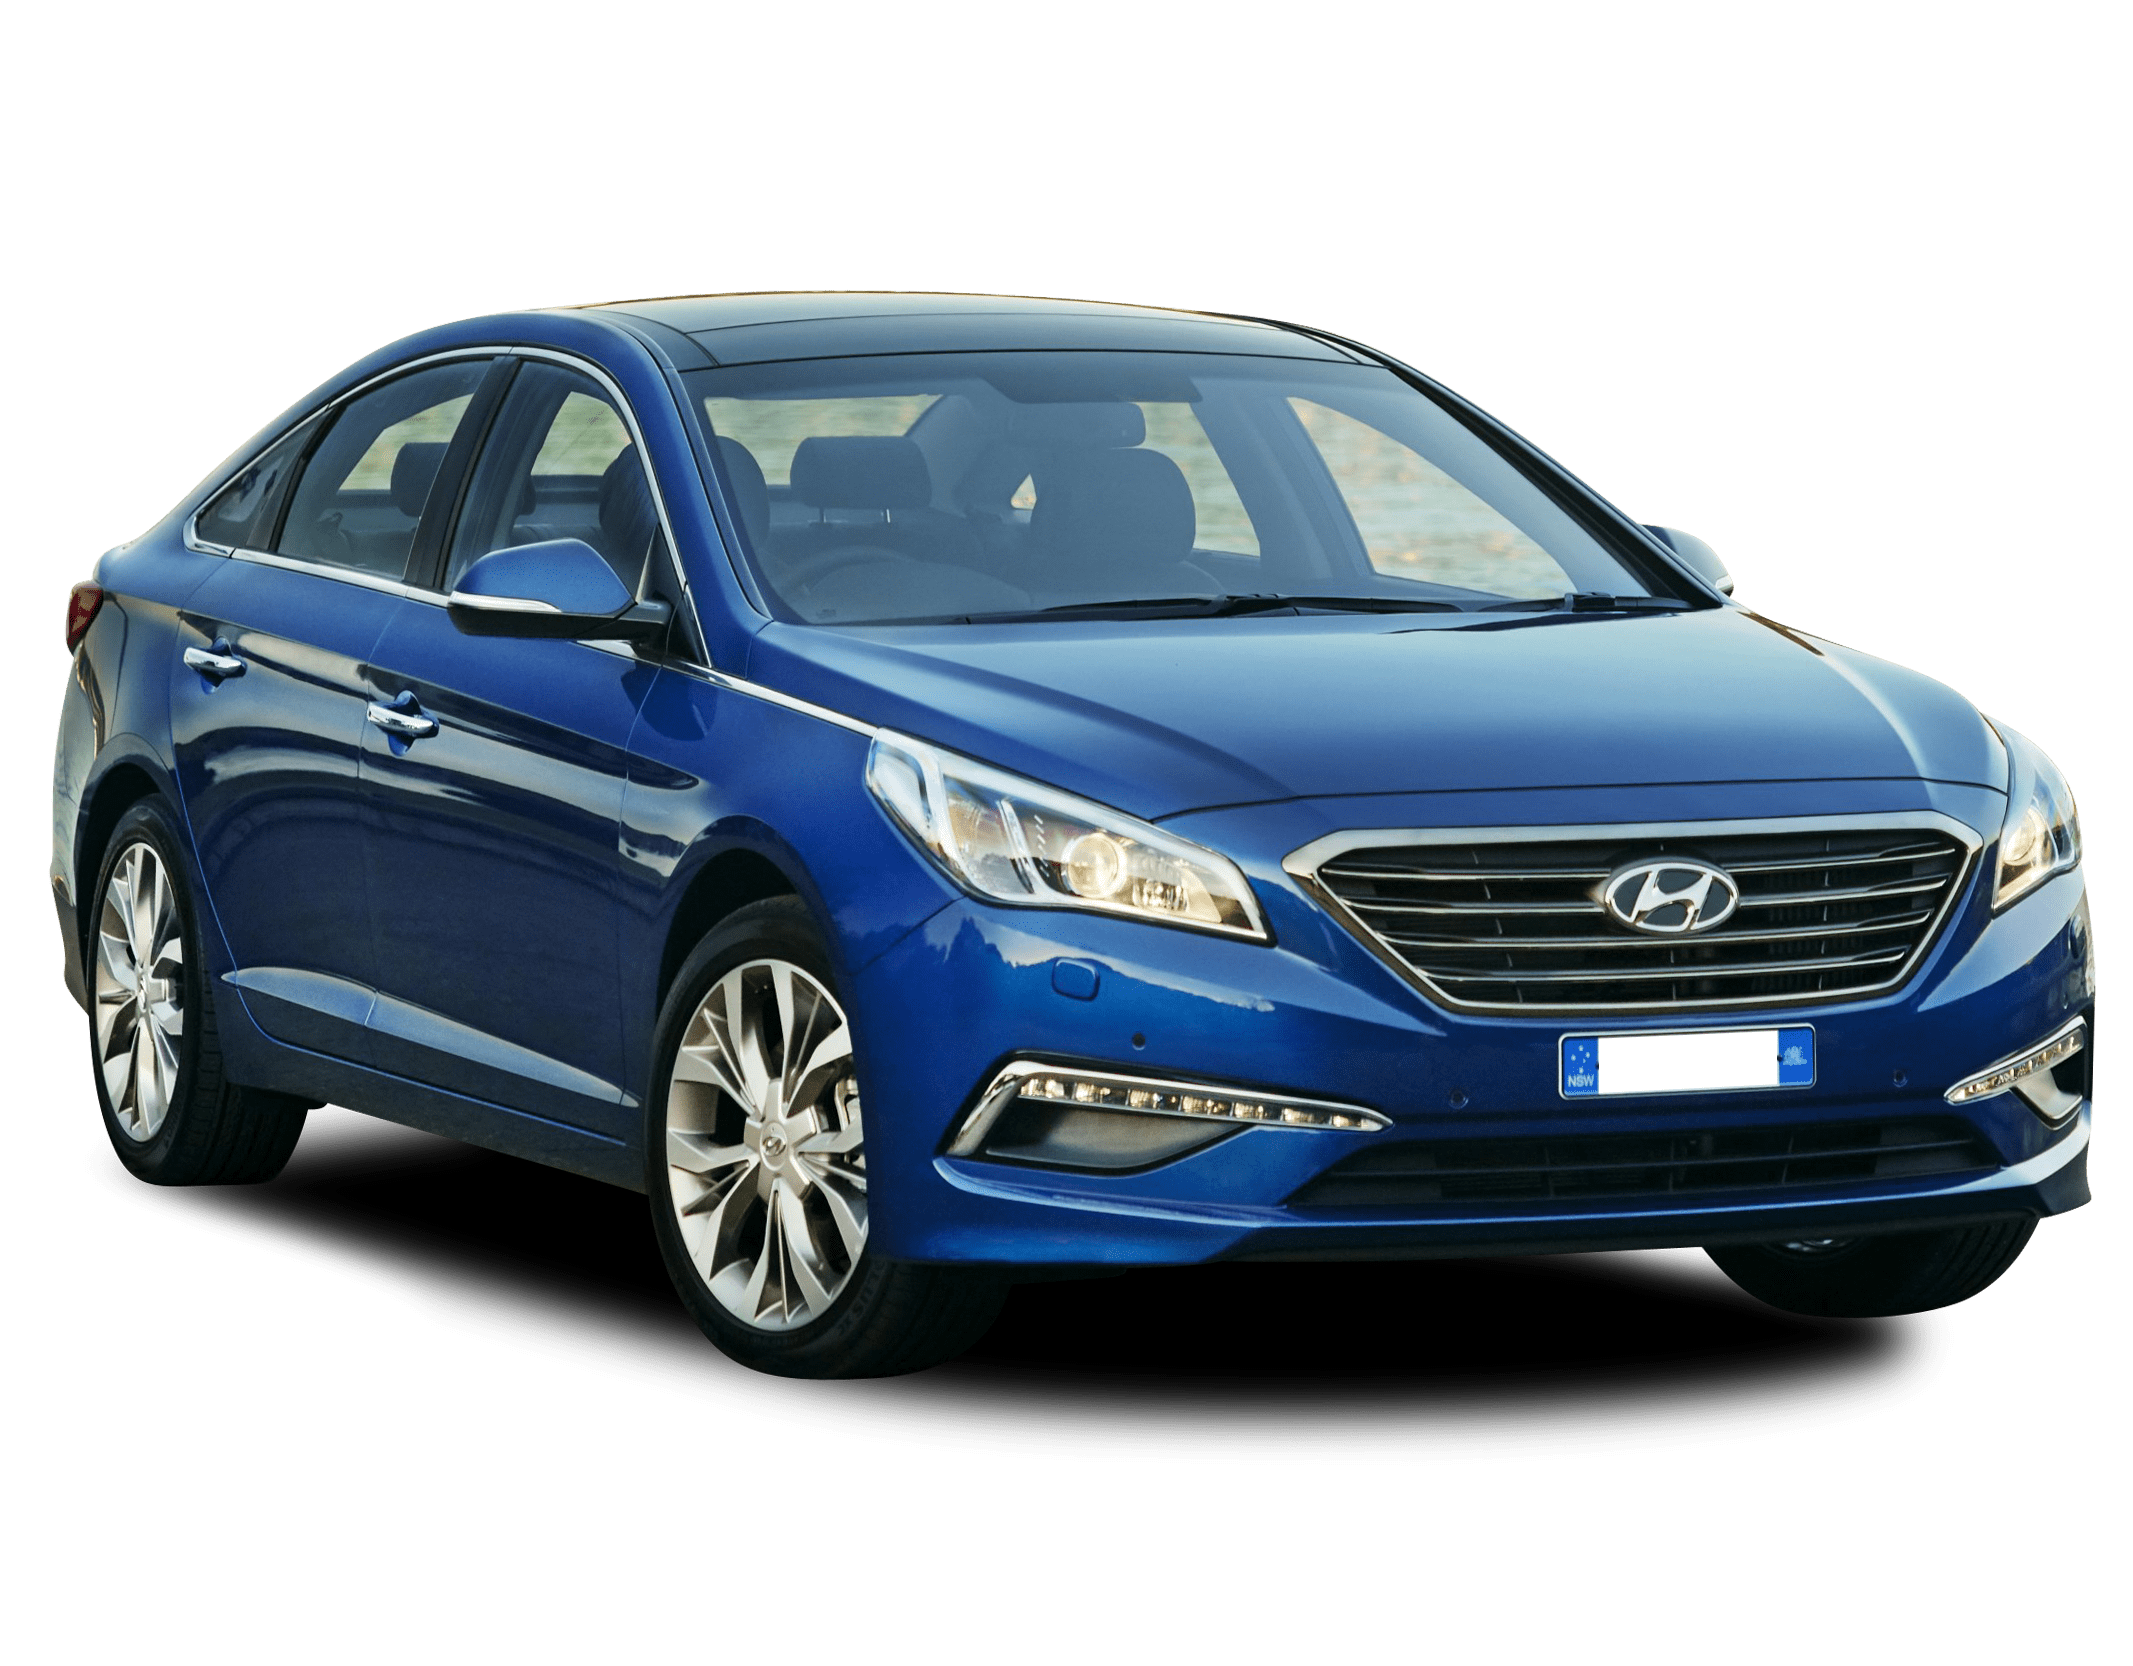 taxi and limited yf invoice reviews forward used hyundai be rating price sale bf sonata of photograph image for